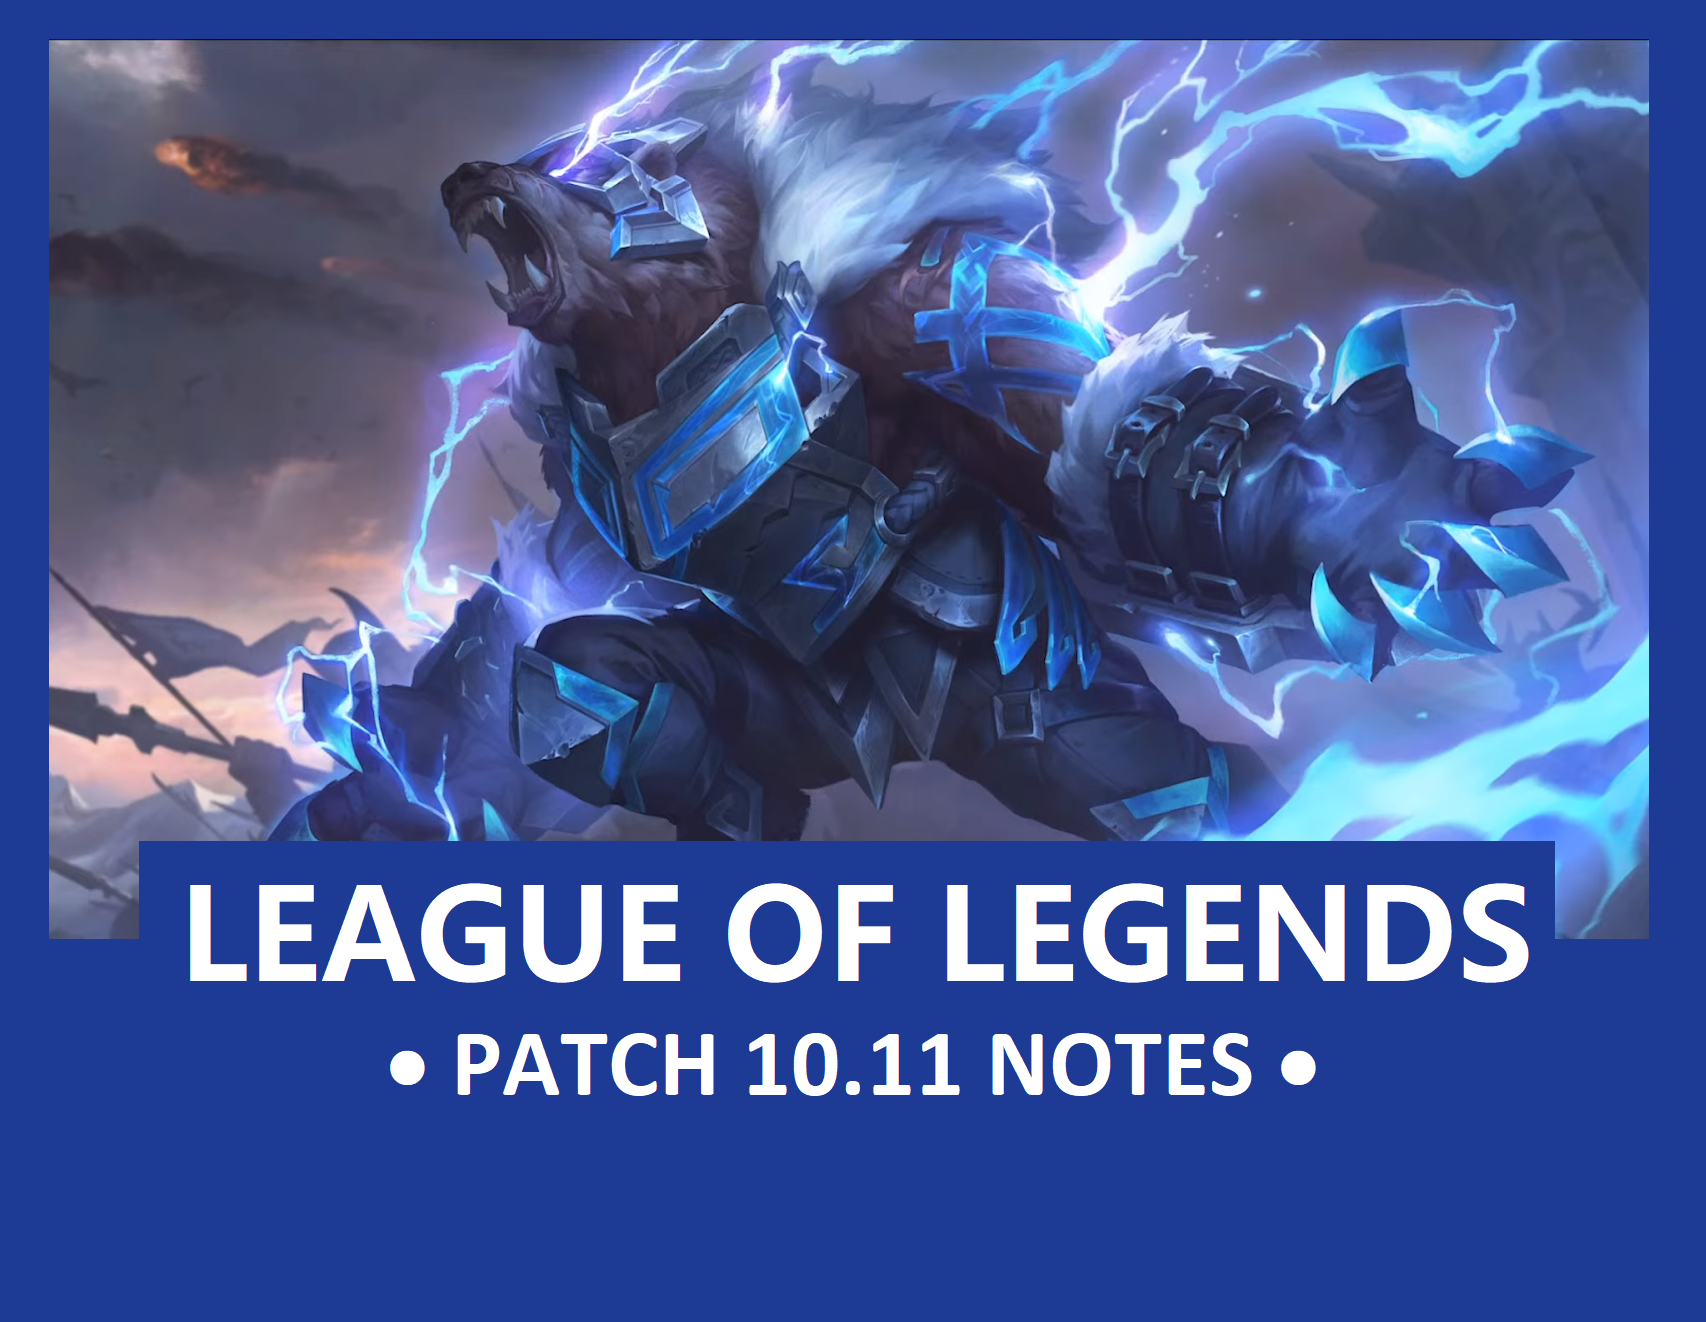 league of legends patch 10.12 - Release date, new high noon skins, rune changes